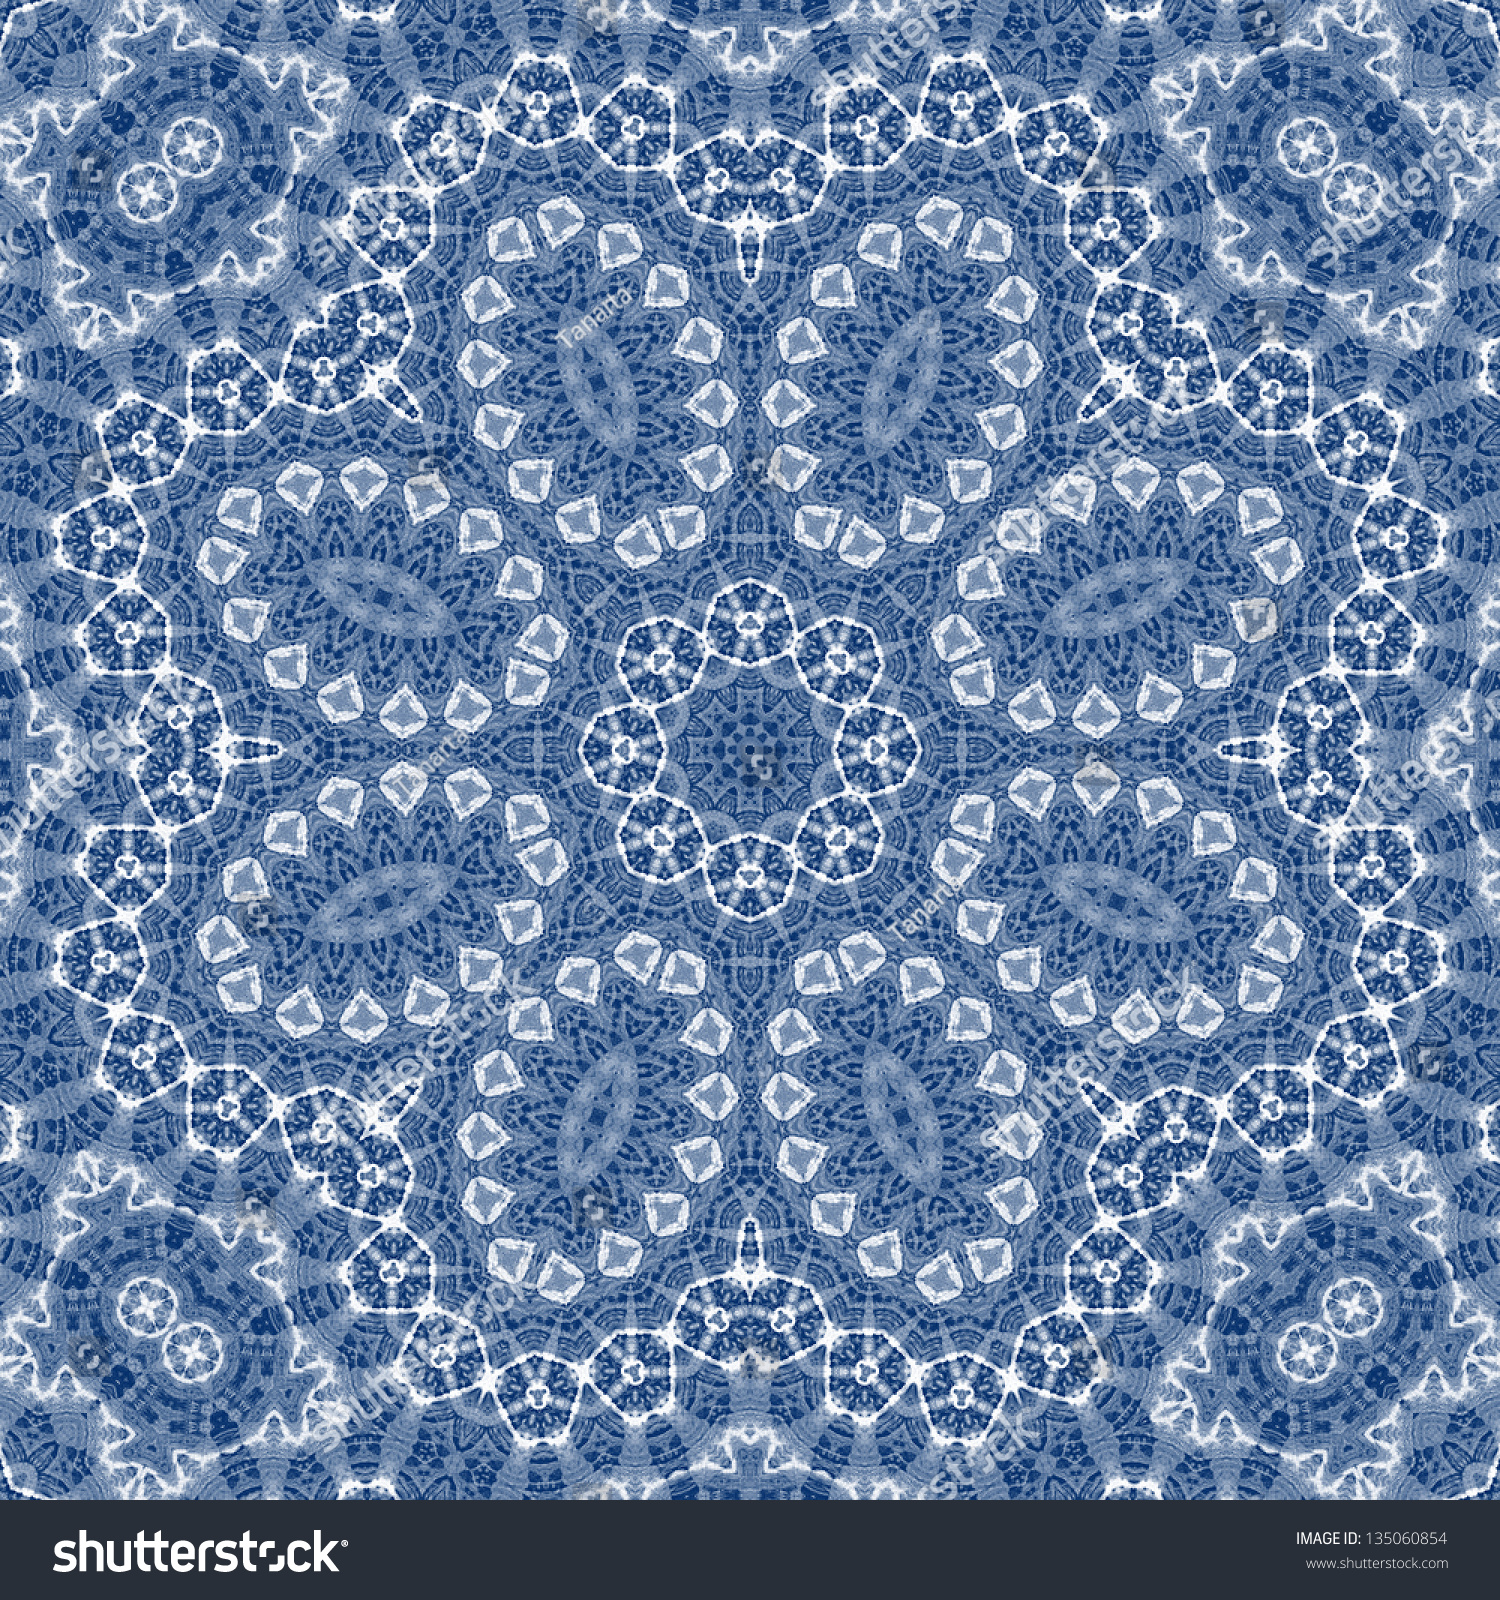 Blue Ink Cotton Flower Lace Form Stock Illustration ...